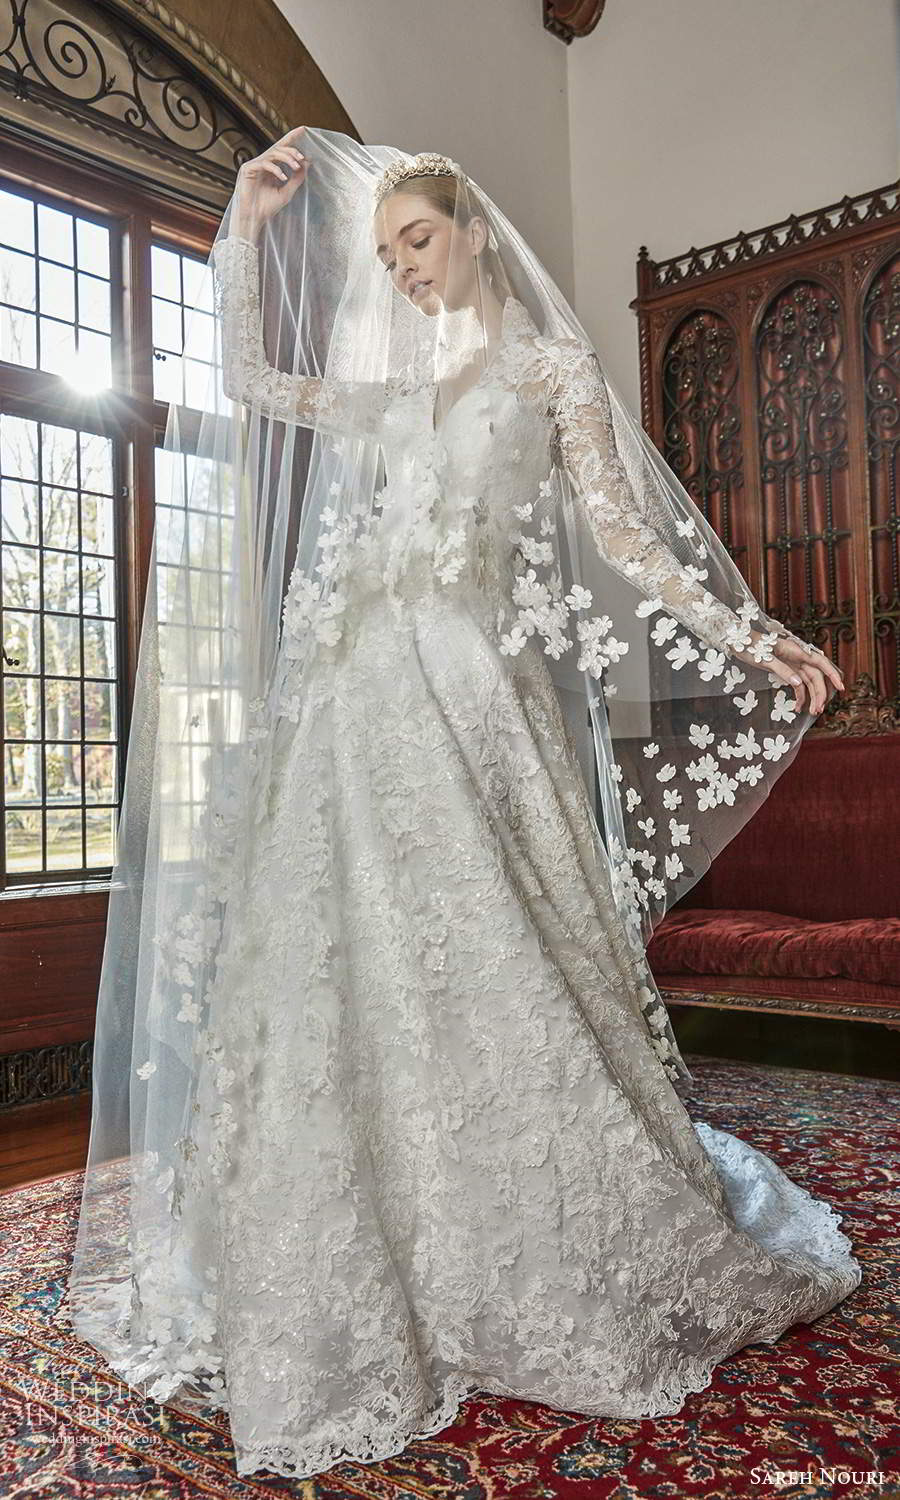 sareh nouri spring 2022 bridal long sleeve high collar v neckline fully embellished lace a line ball gown wedding dress chapel train veil (1) fv